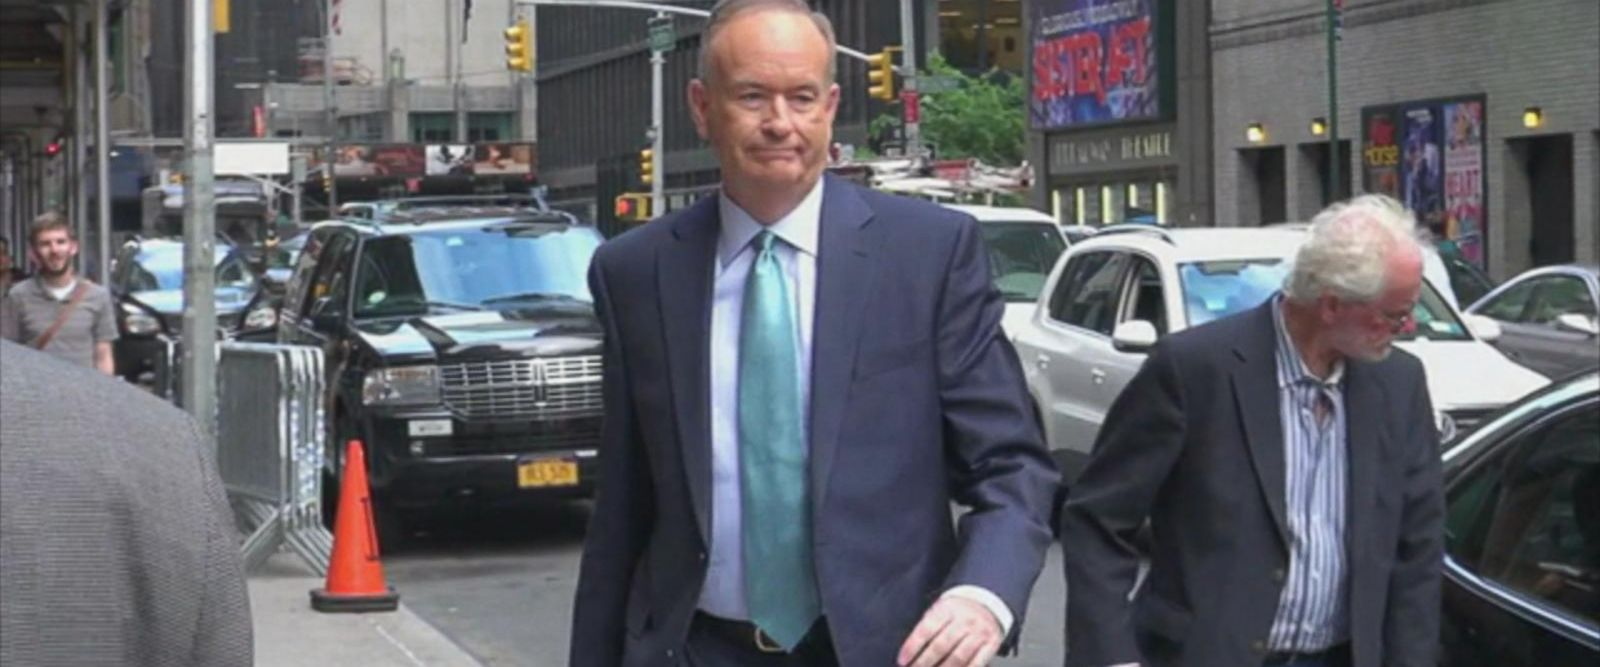 VIDEO: Bill O'Reilly returns to airwaves with podcast after Fox News split